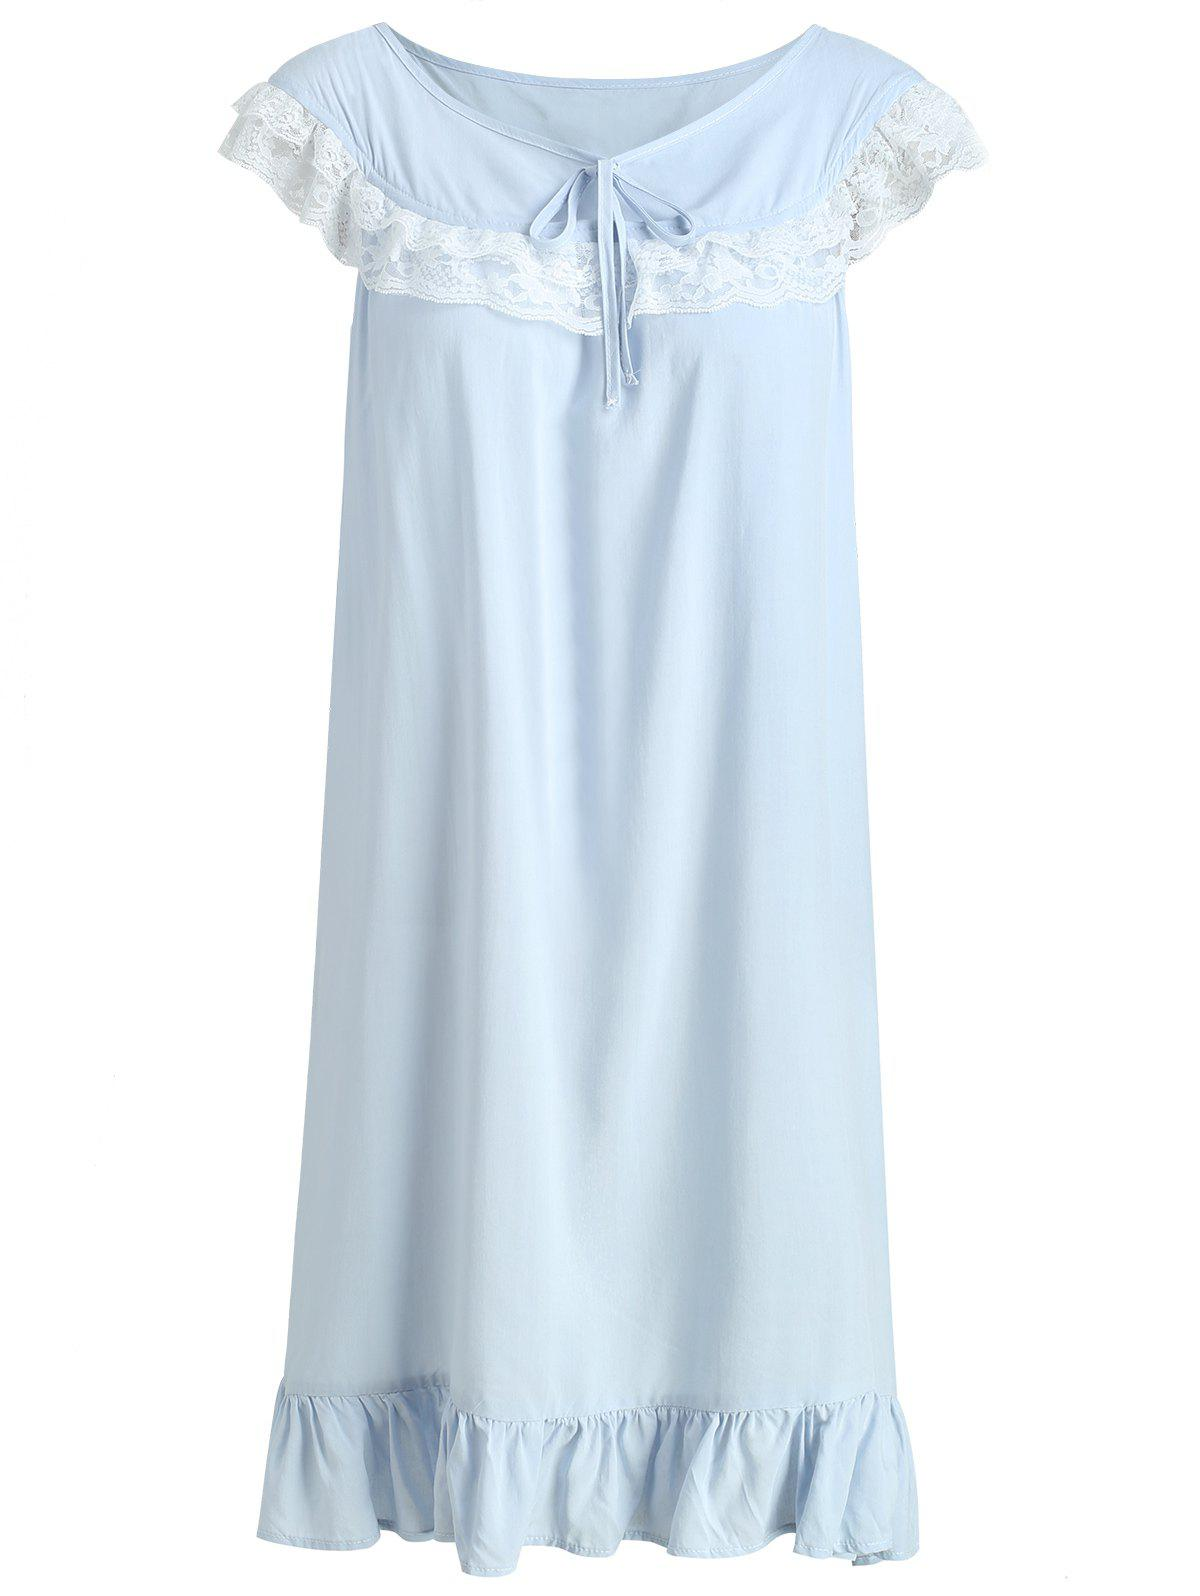 Fancy Flounce Lace Insert Bowknot Sleeping Dress